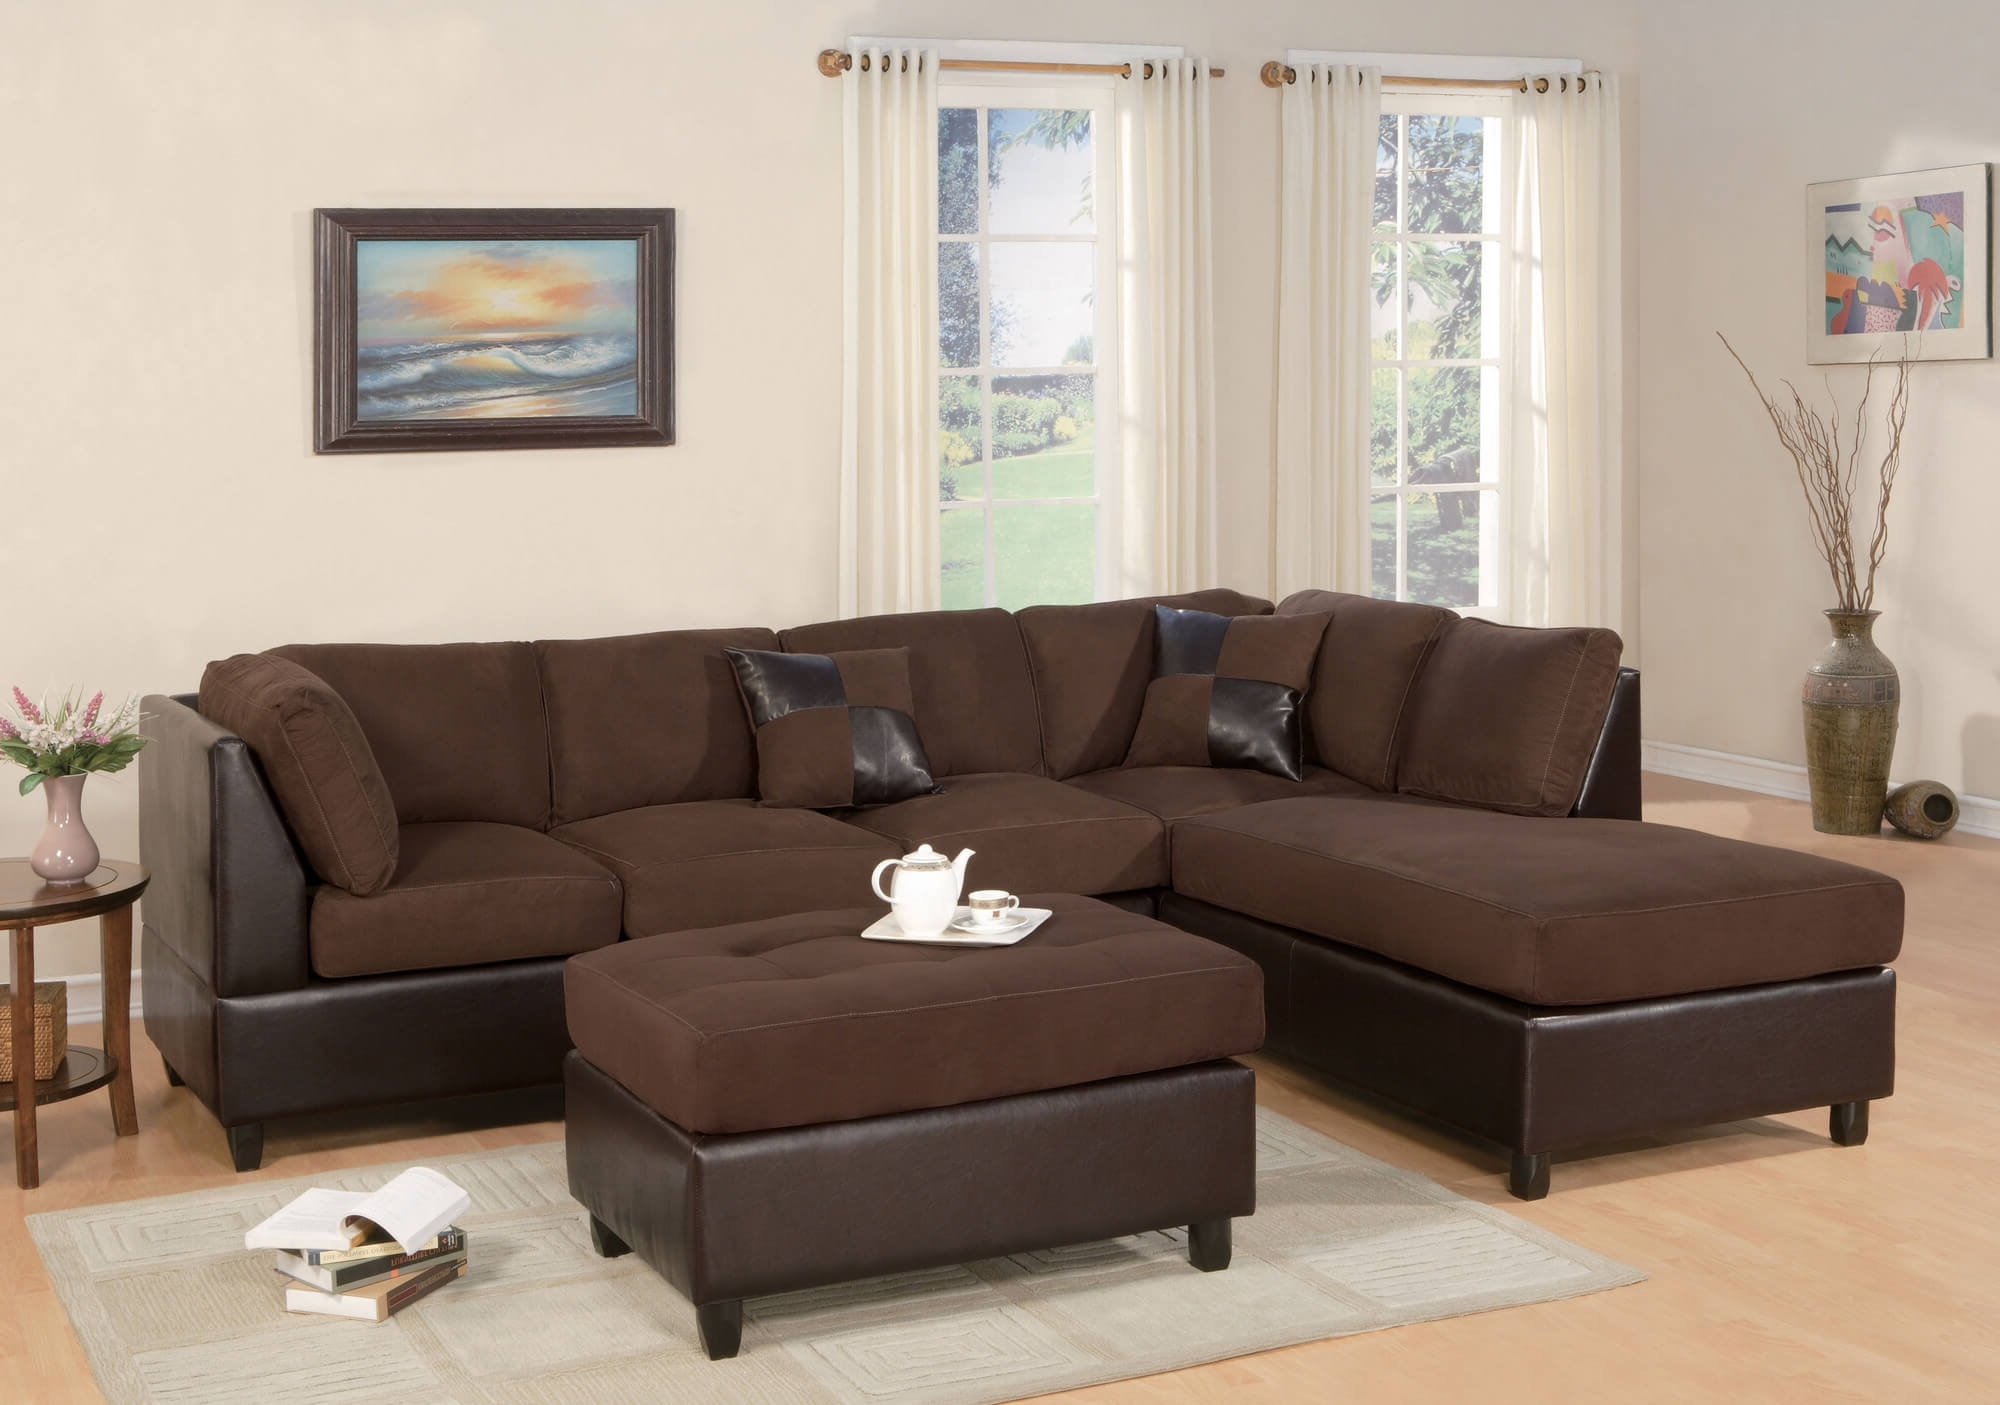 Chocolate Brown Sectional Sofas Pertaining To 2019 Epic Chocolate Brown Sectional Sofas 65 In Light Blue Sectional (View 5 of 20)